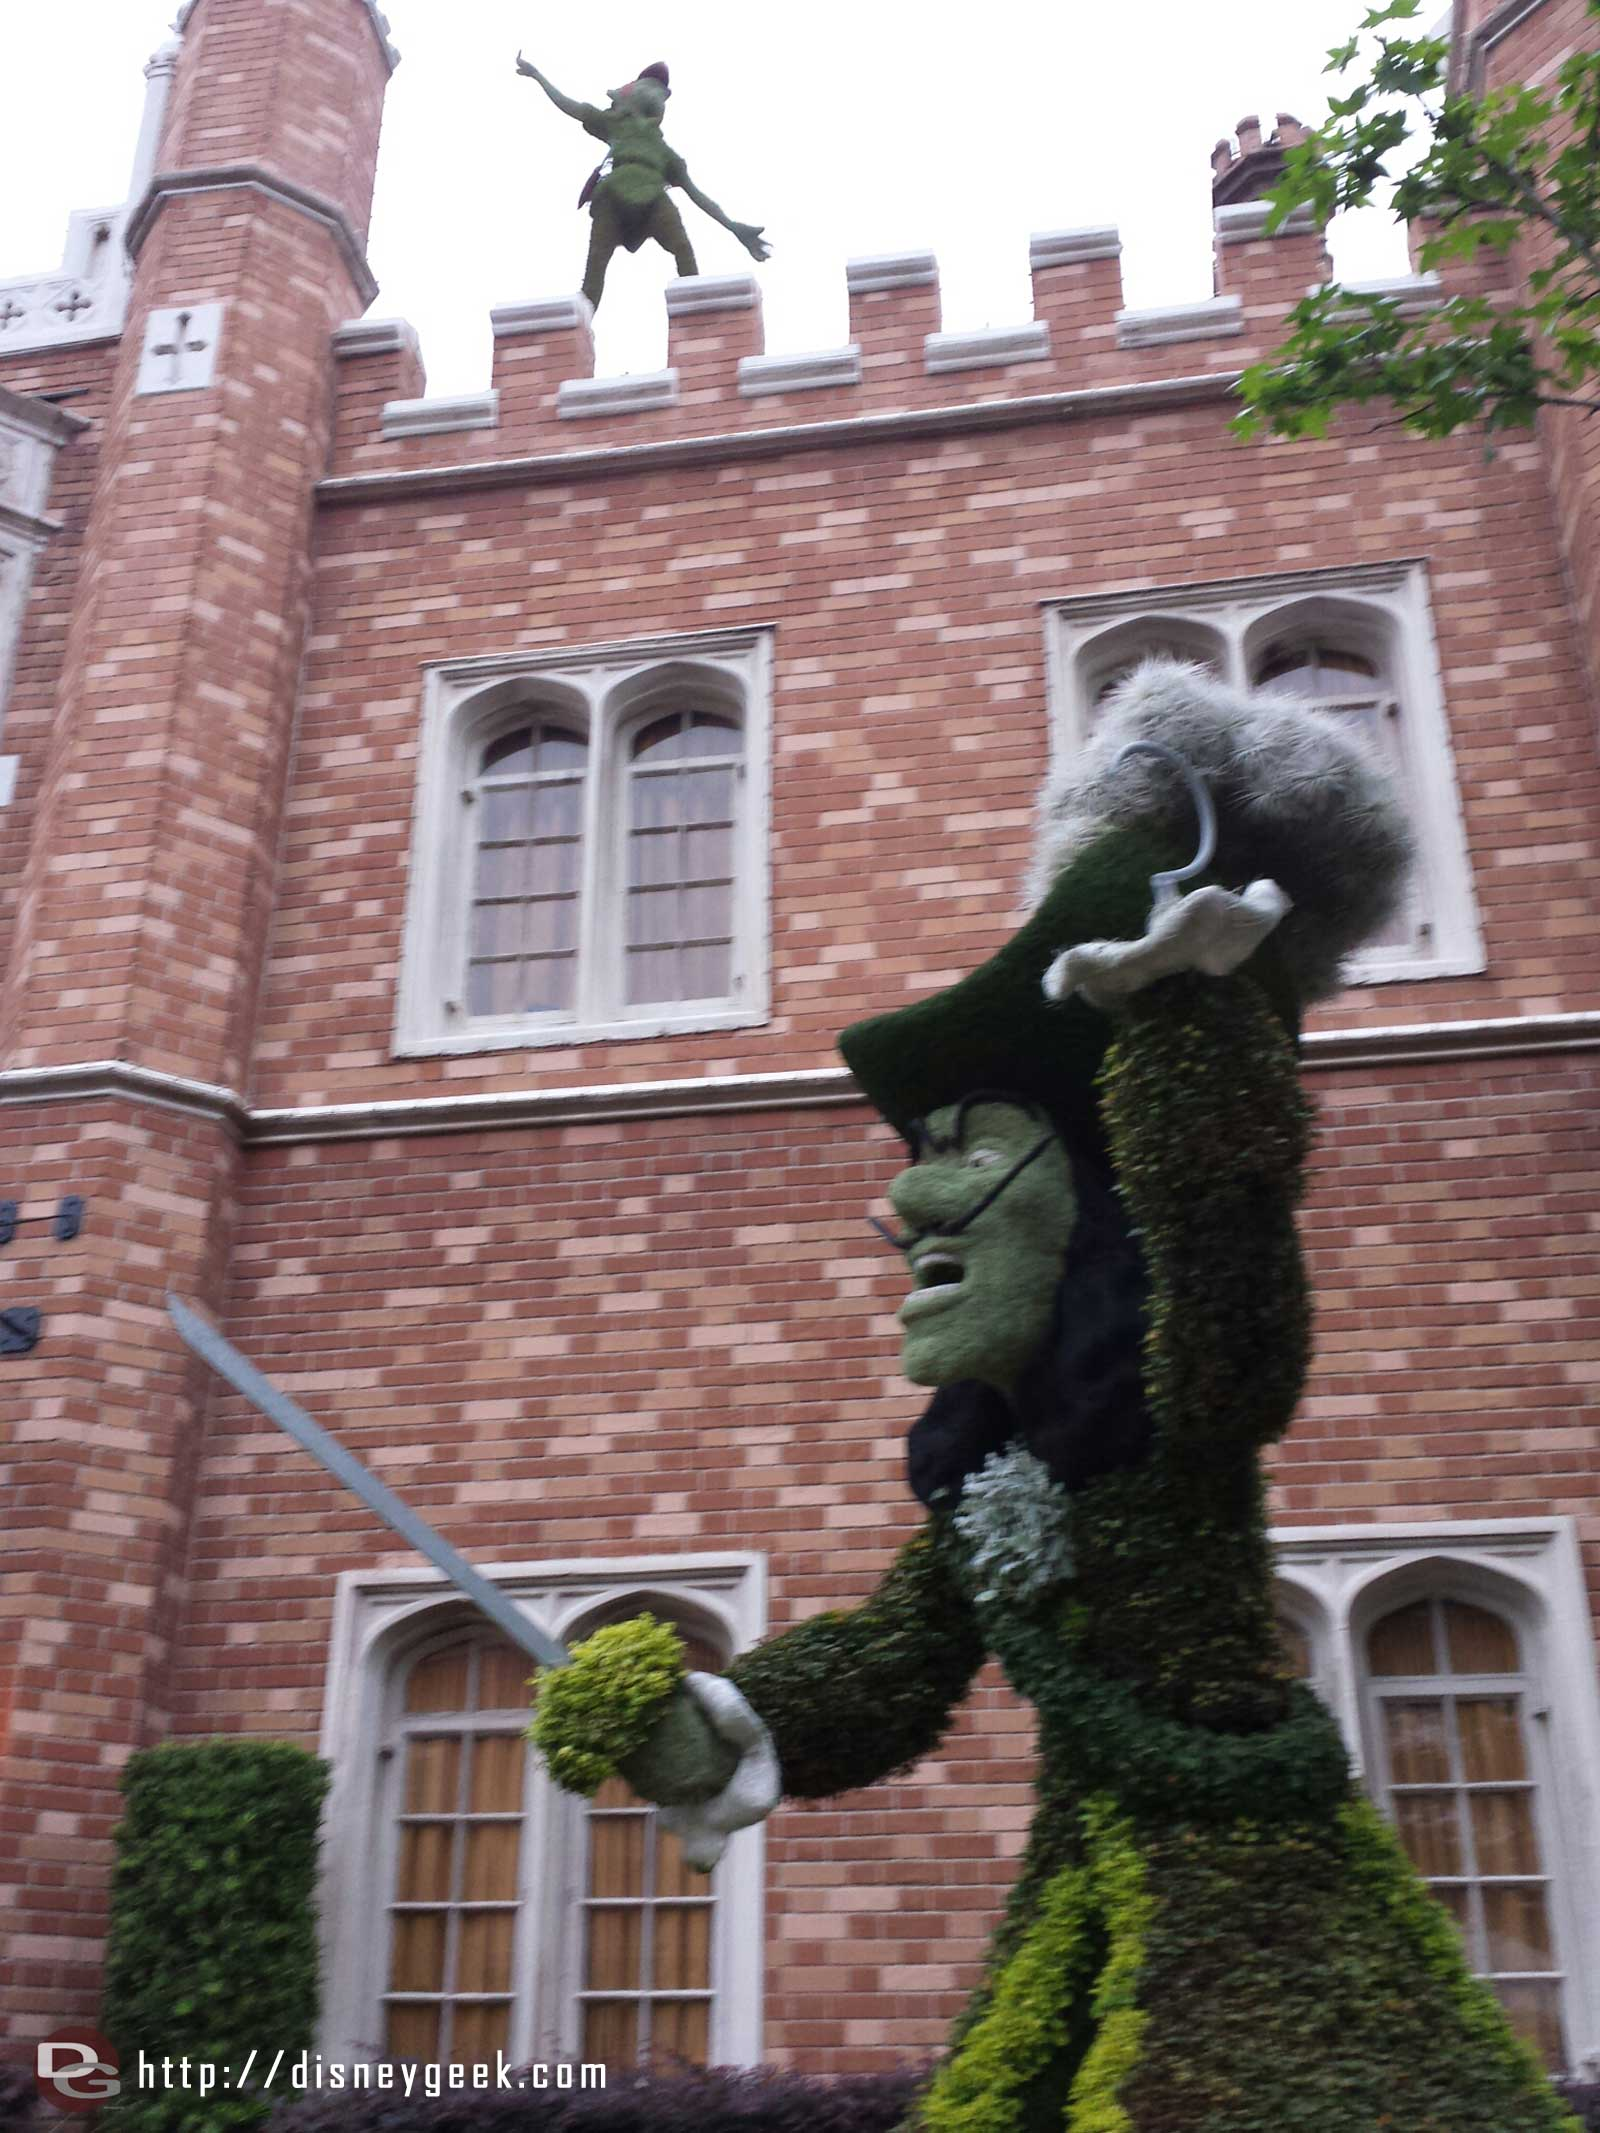 Peter Pan & Captain Hook topiaries in the UK –  Epcot International Flower & Garden Festival